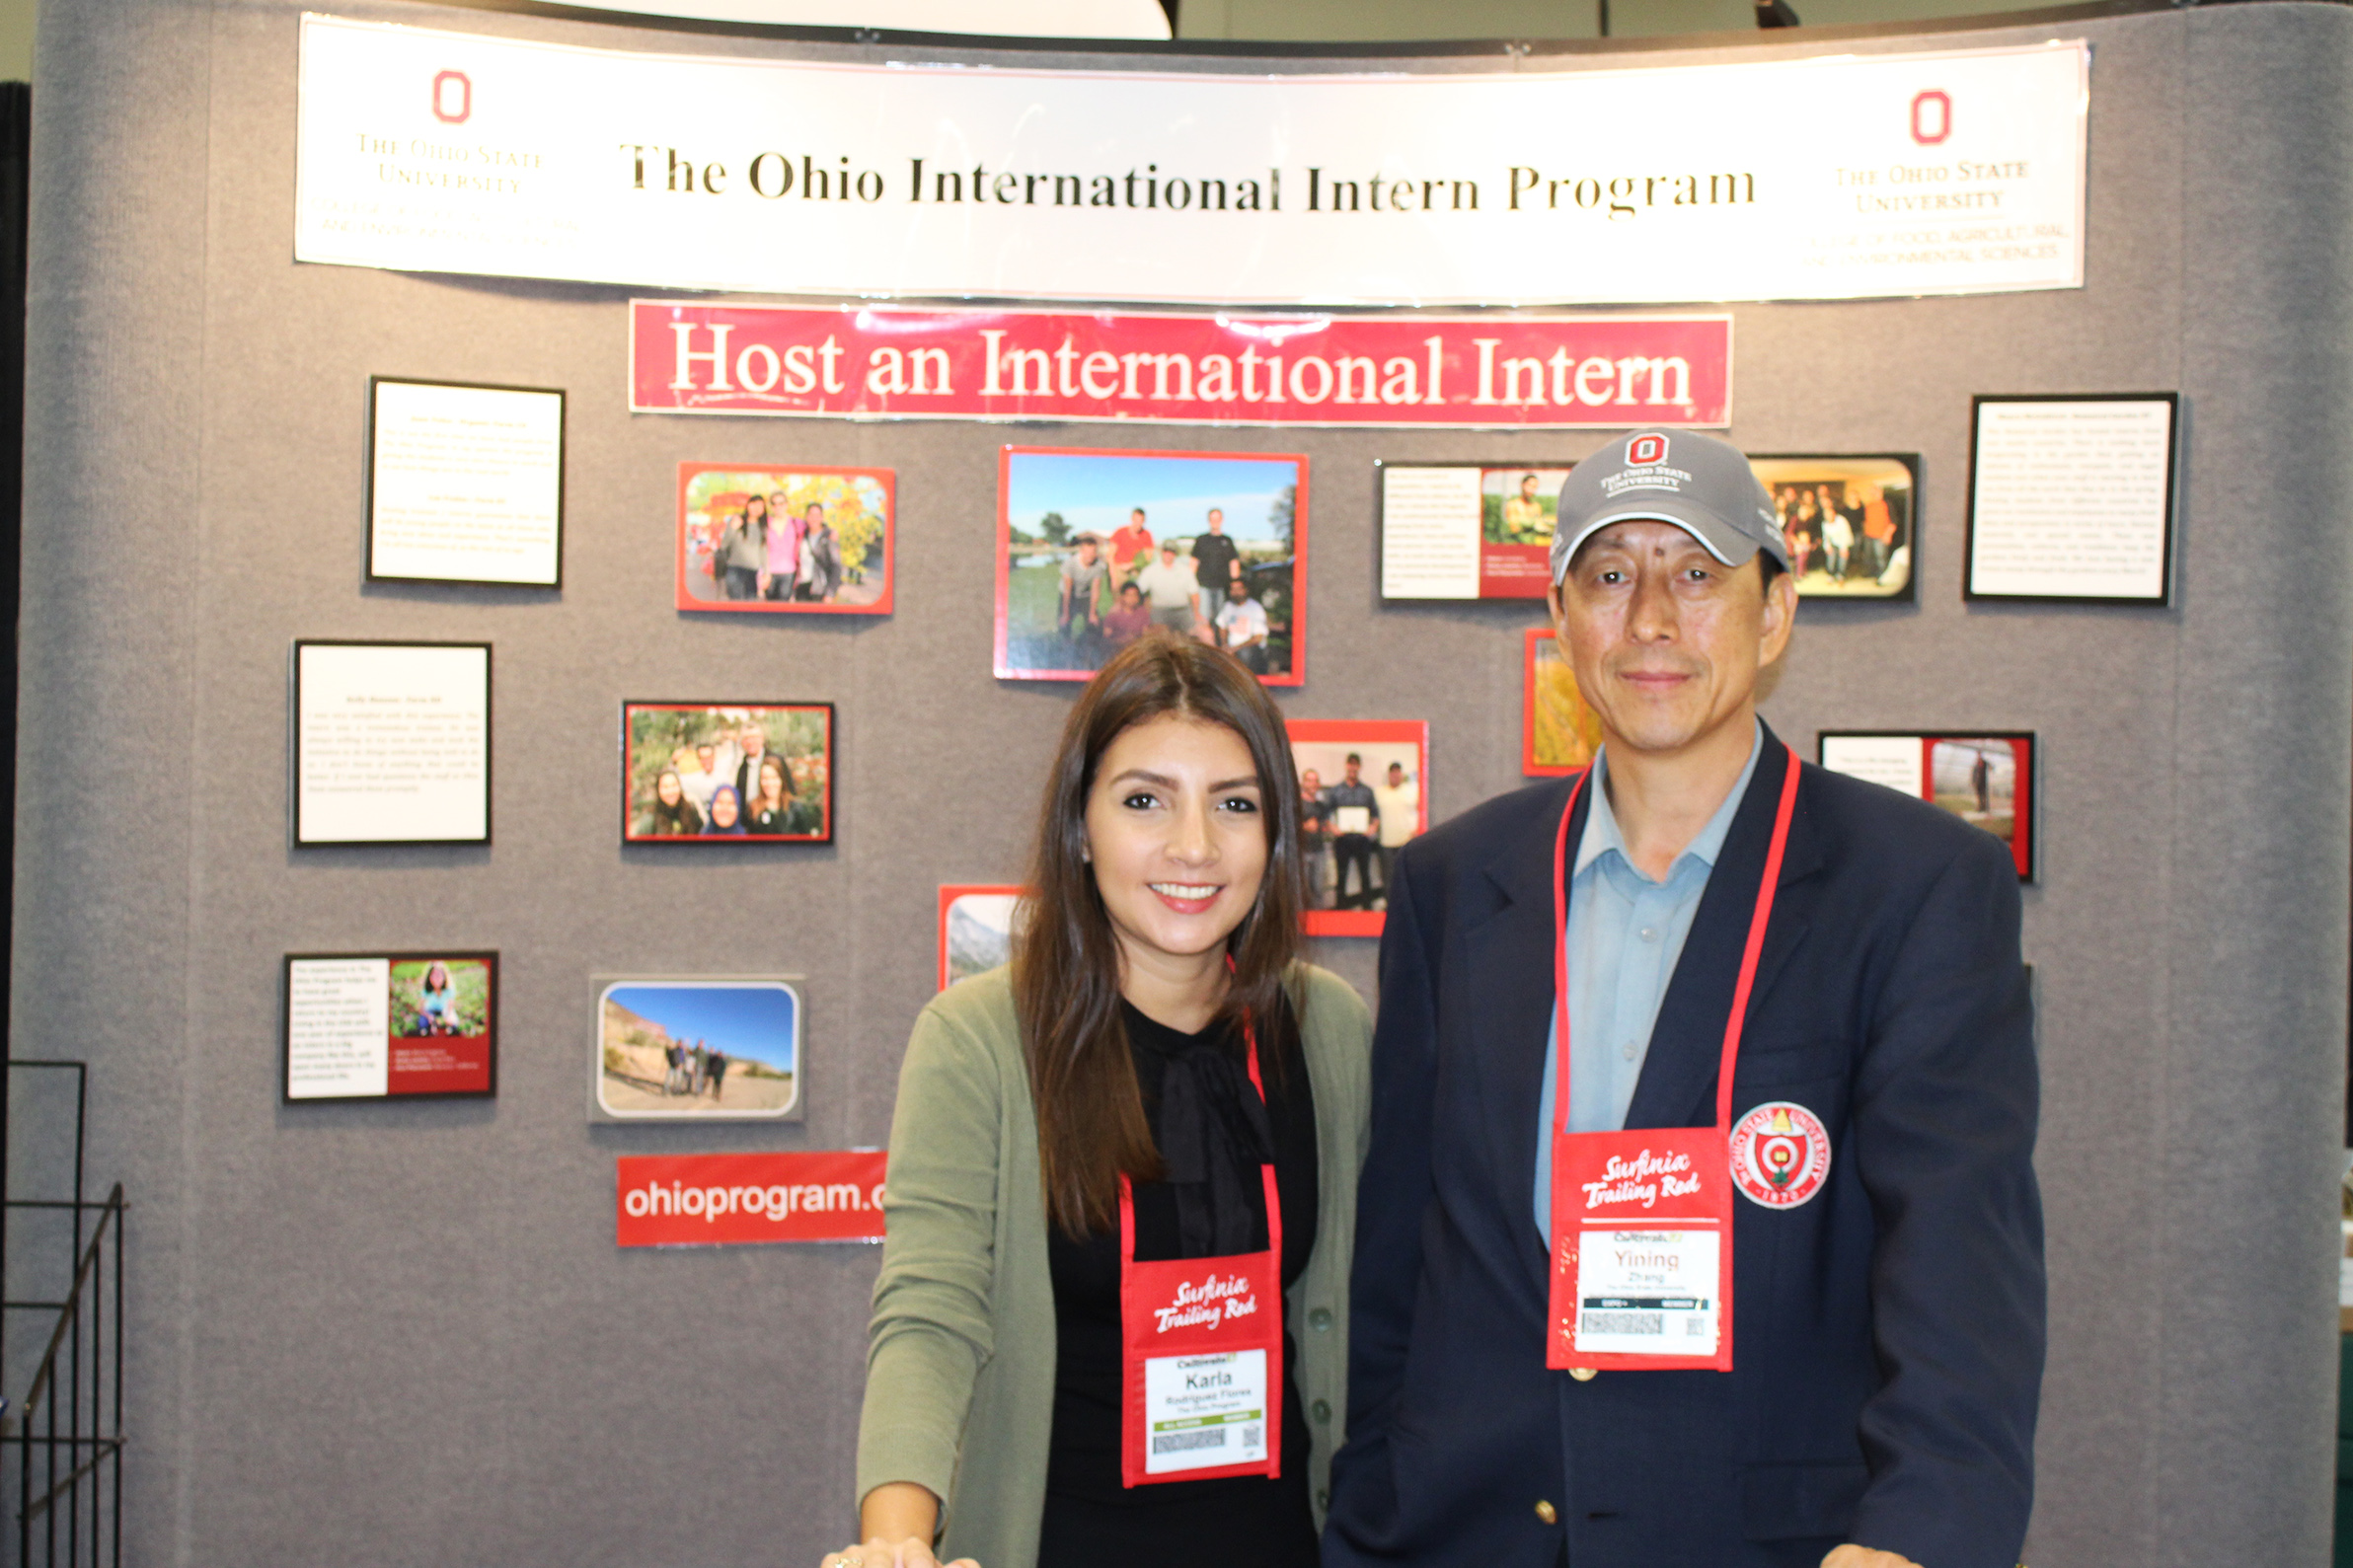 The Ohio Program Booth 2